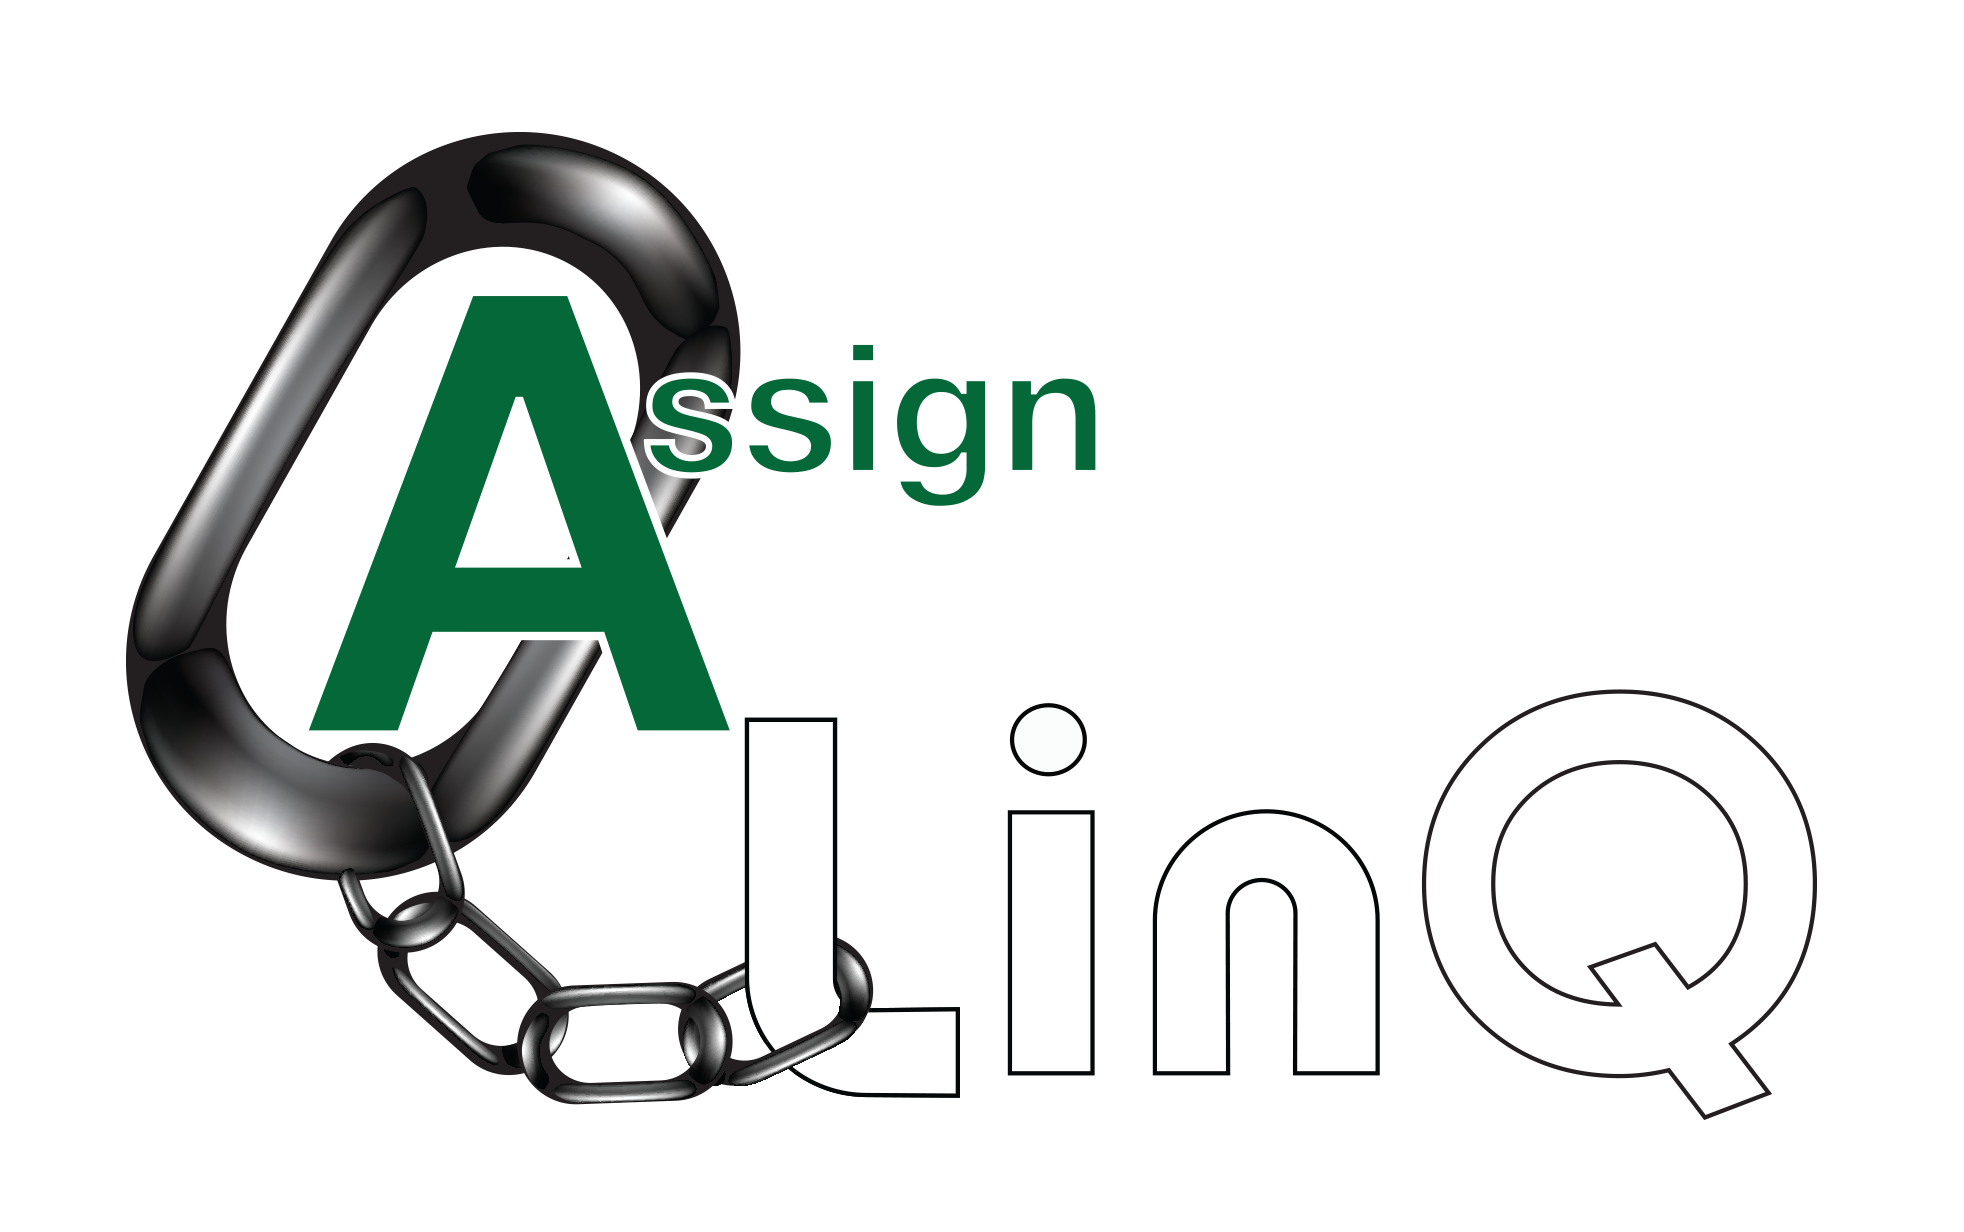 Assign LinQ logo